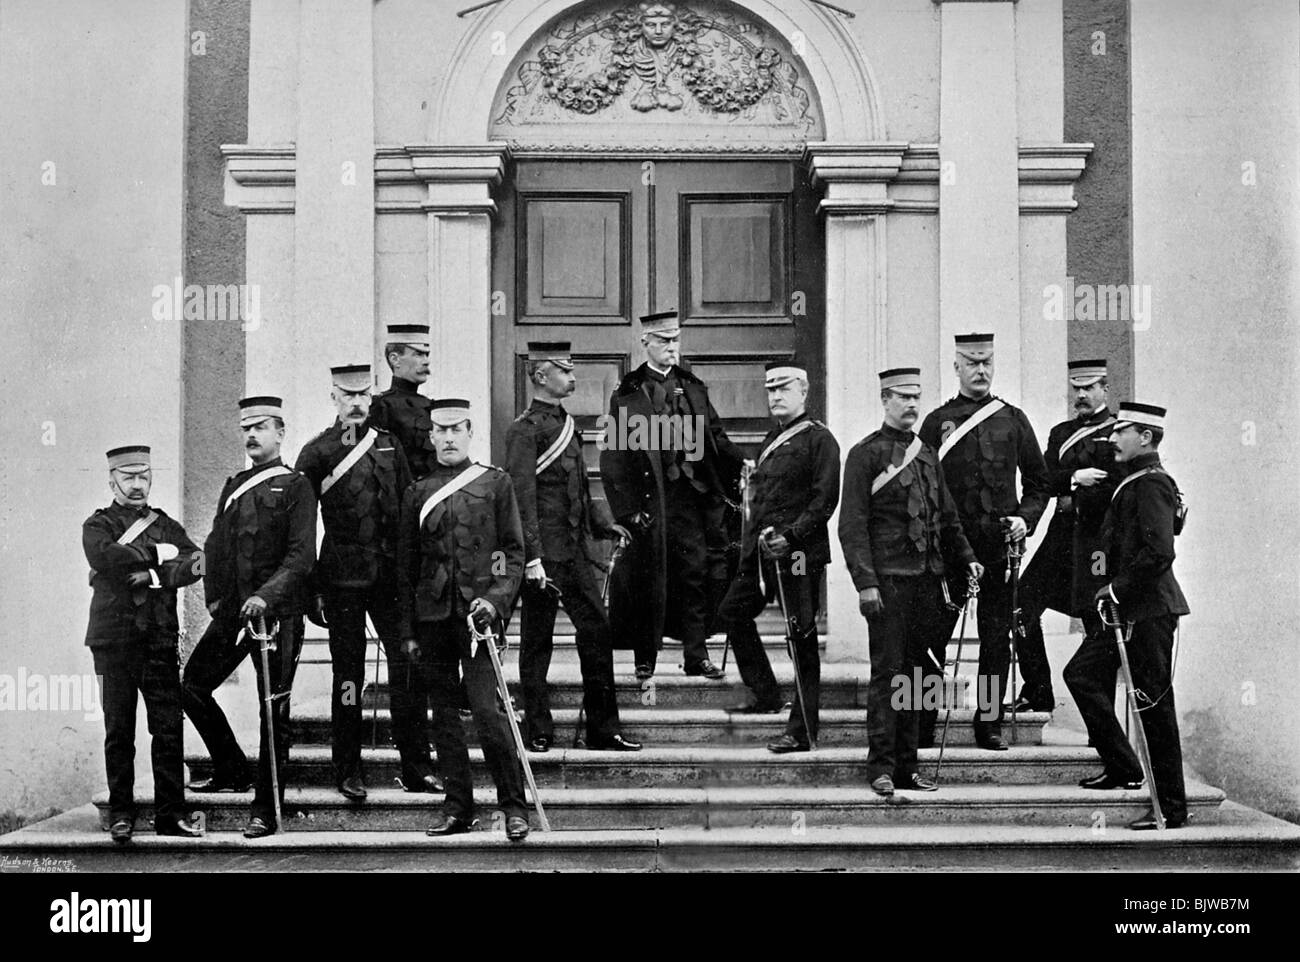 Field Marshal Lord Roberts and his headquarters staff, Kilmainham, Ireland, 1896.Artist: Lafayette - Stock Image